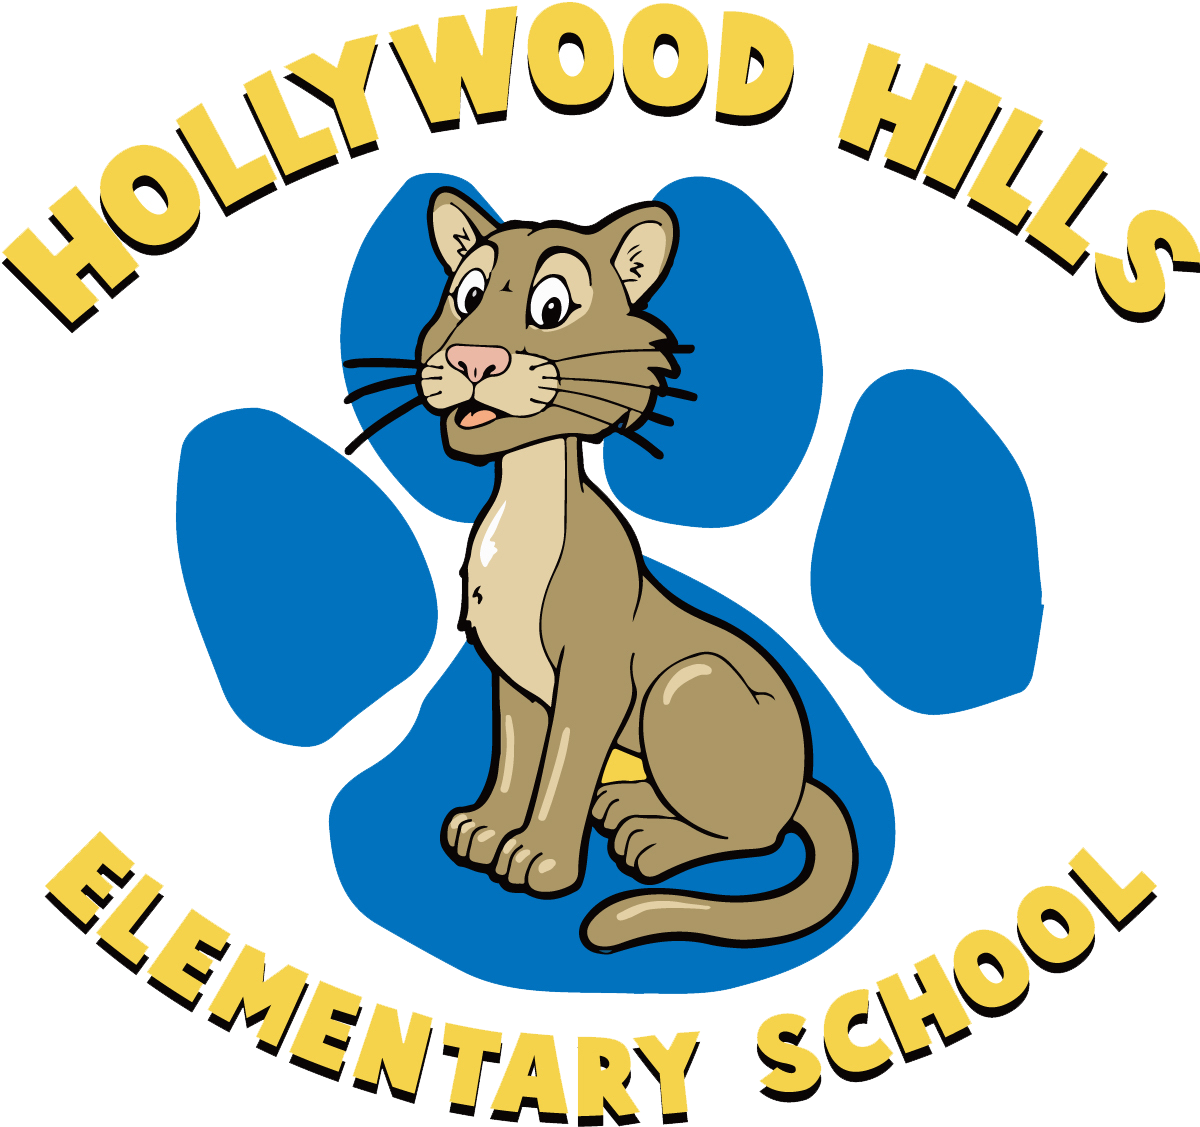 Hollywood Hills Elementary School Virtual Learning Technical Support